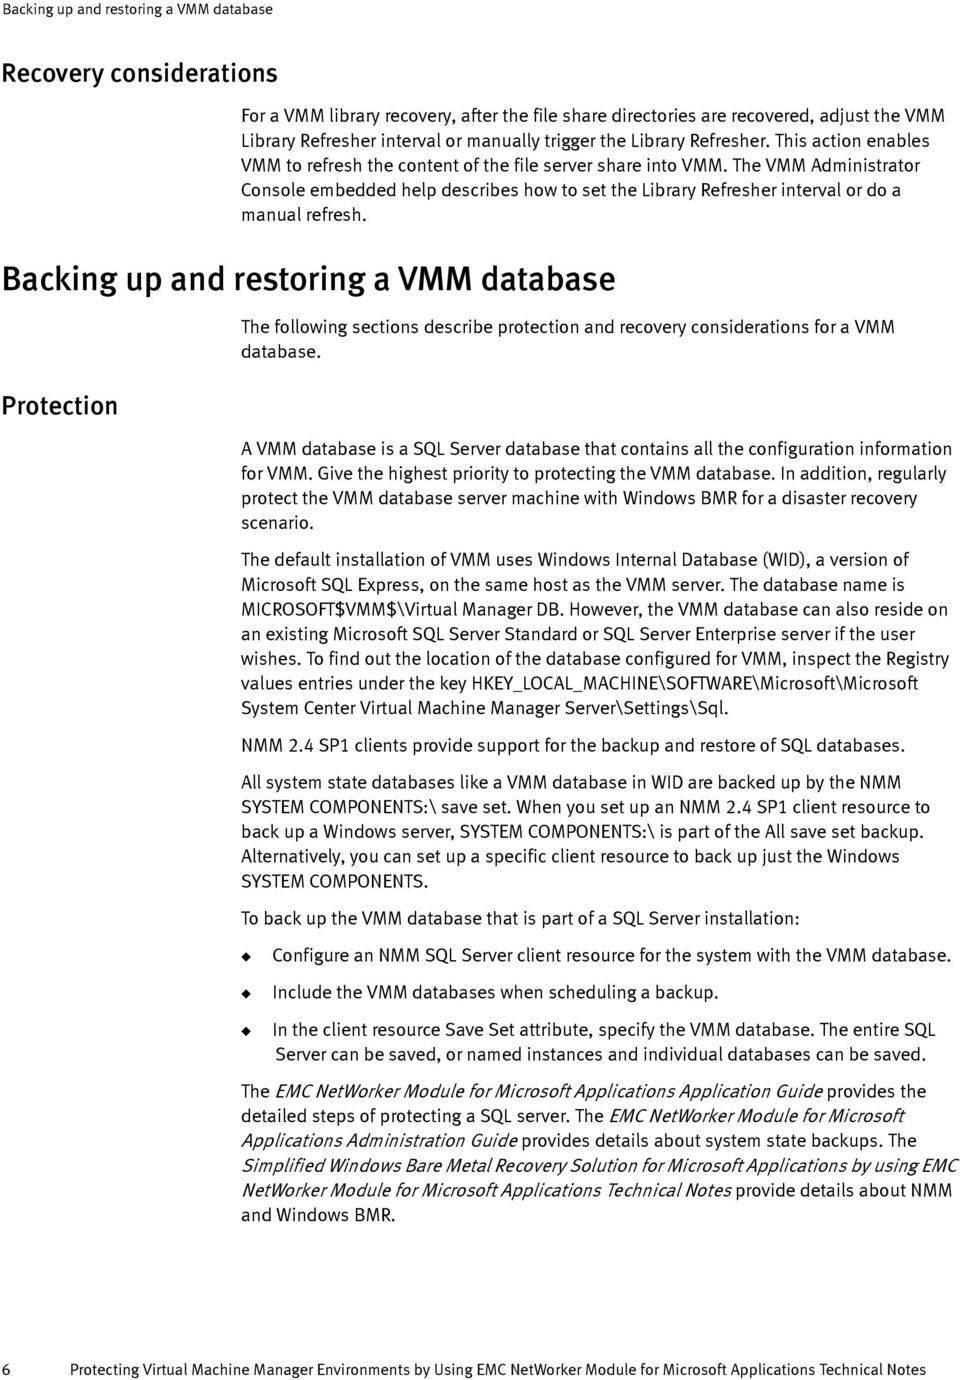 The VMM Administrator Console embedded help describes how to set the Library Refresher interval or do a manual refresh.